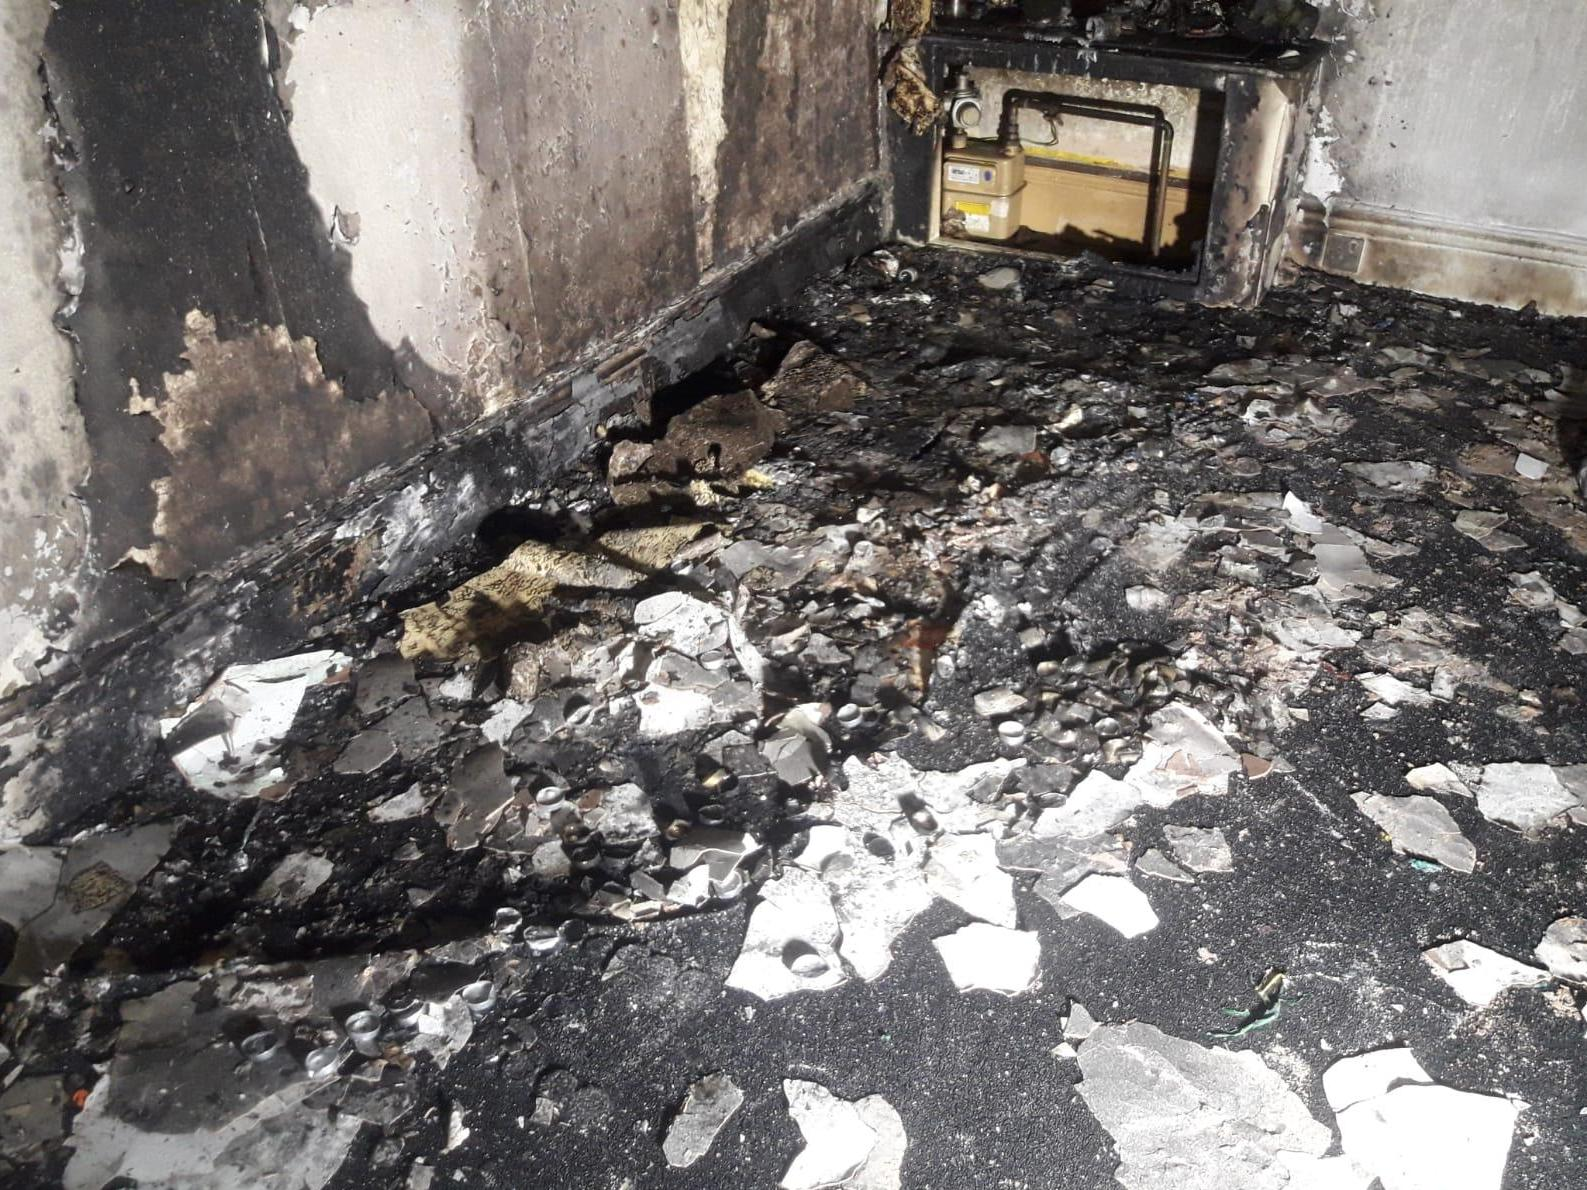 Man accidentally burns down own flat while proposing to girlfriend